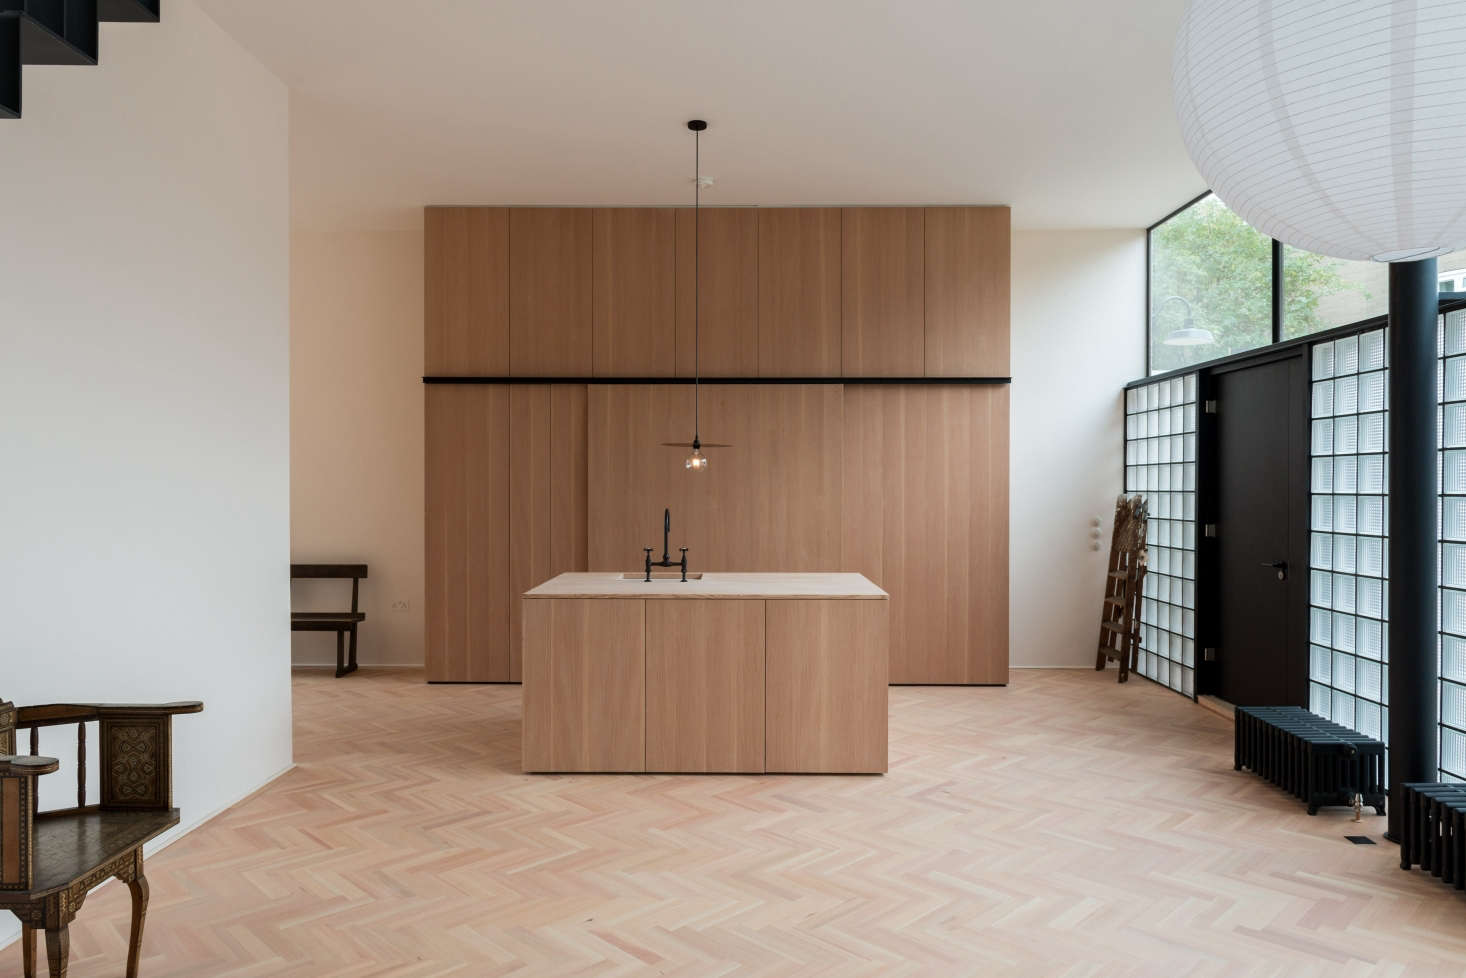 In a project by Frame, a design-led property firm founded by architects Nick Mansour and Hugo Braddick, all kitchen storage is concealed in built-in floor-to-ceiling cabinetry. See more at A London New-Build Inspired by the Iconic Maison de Verre.